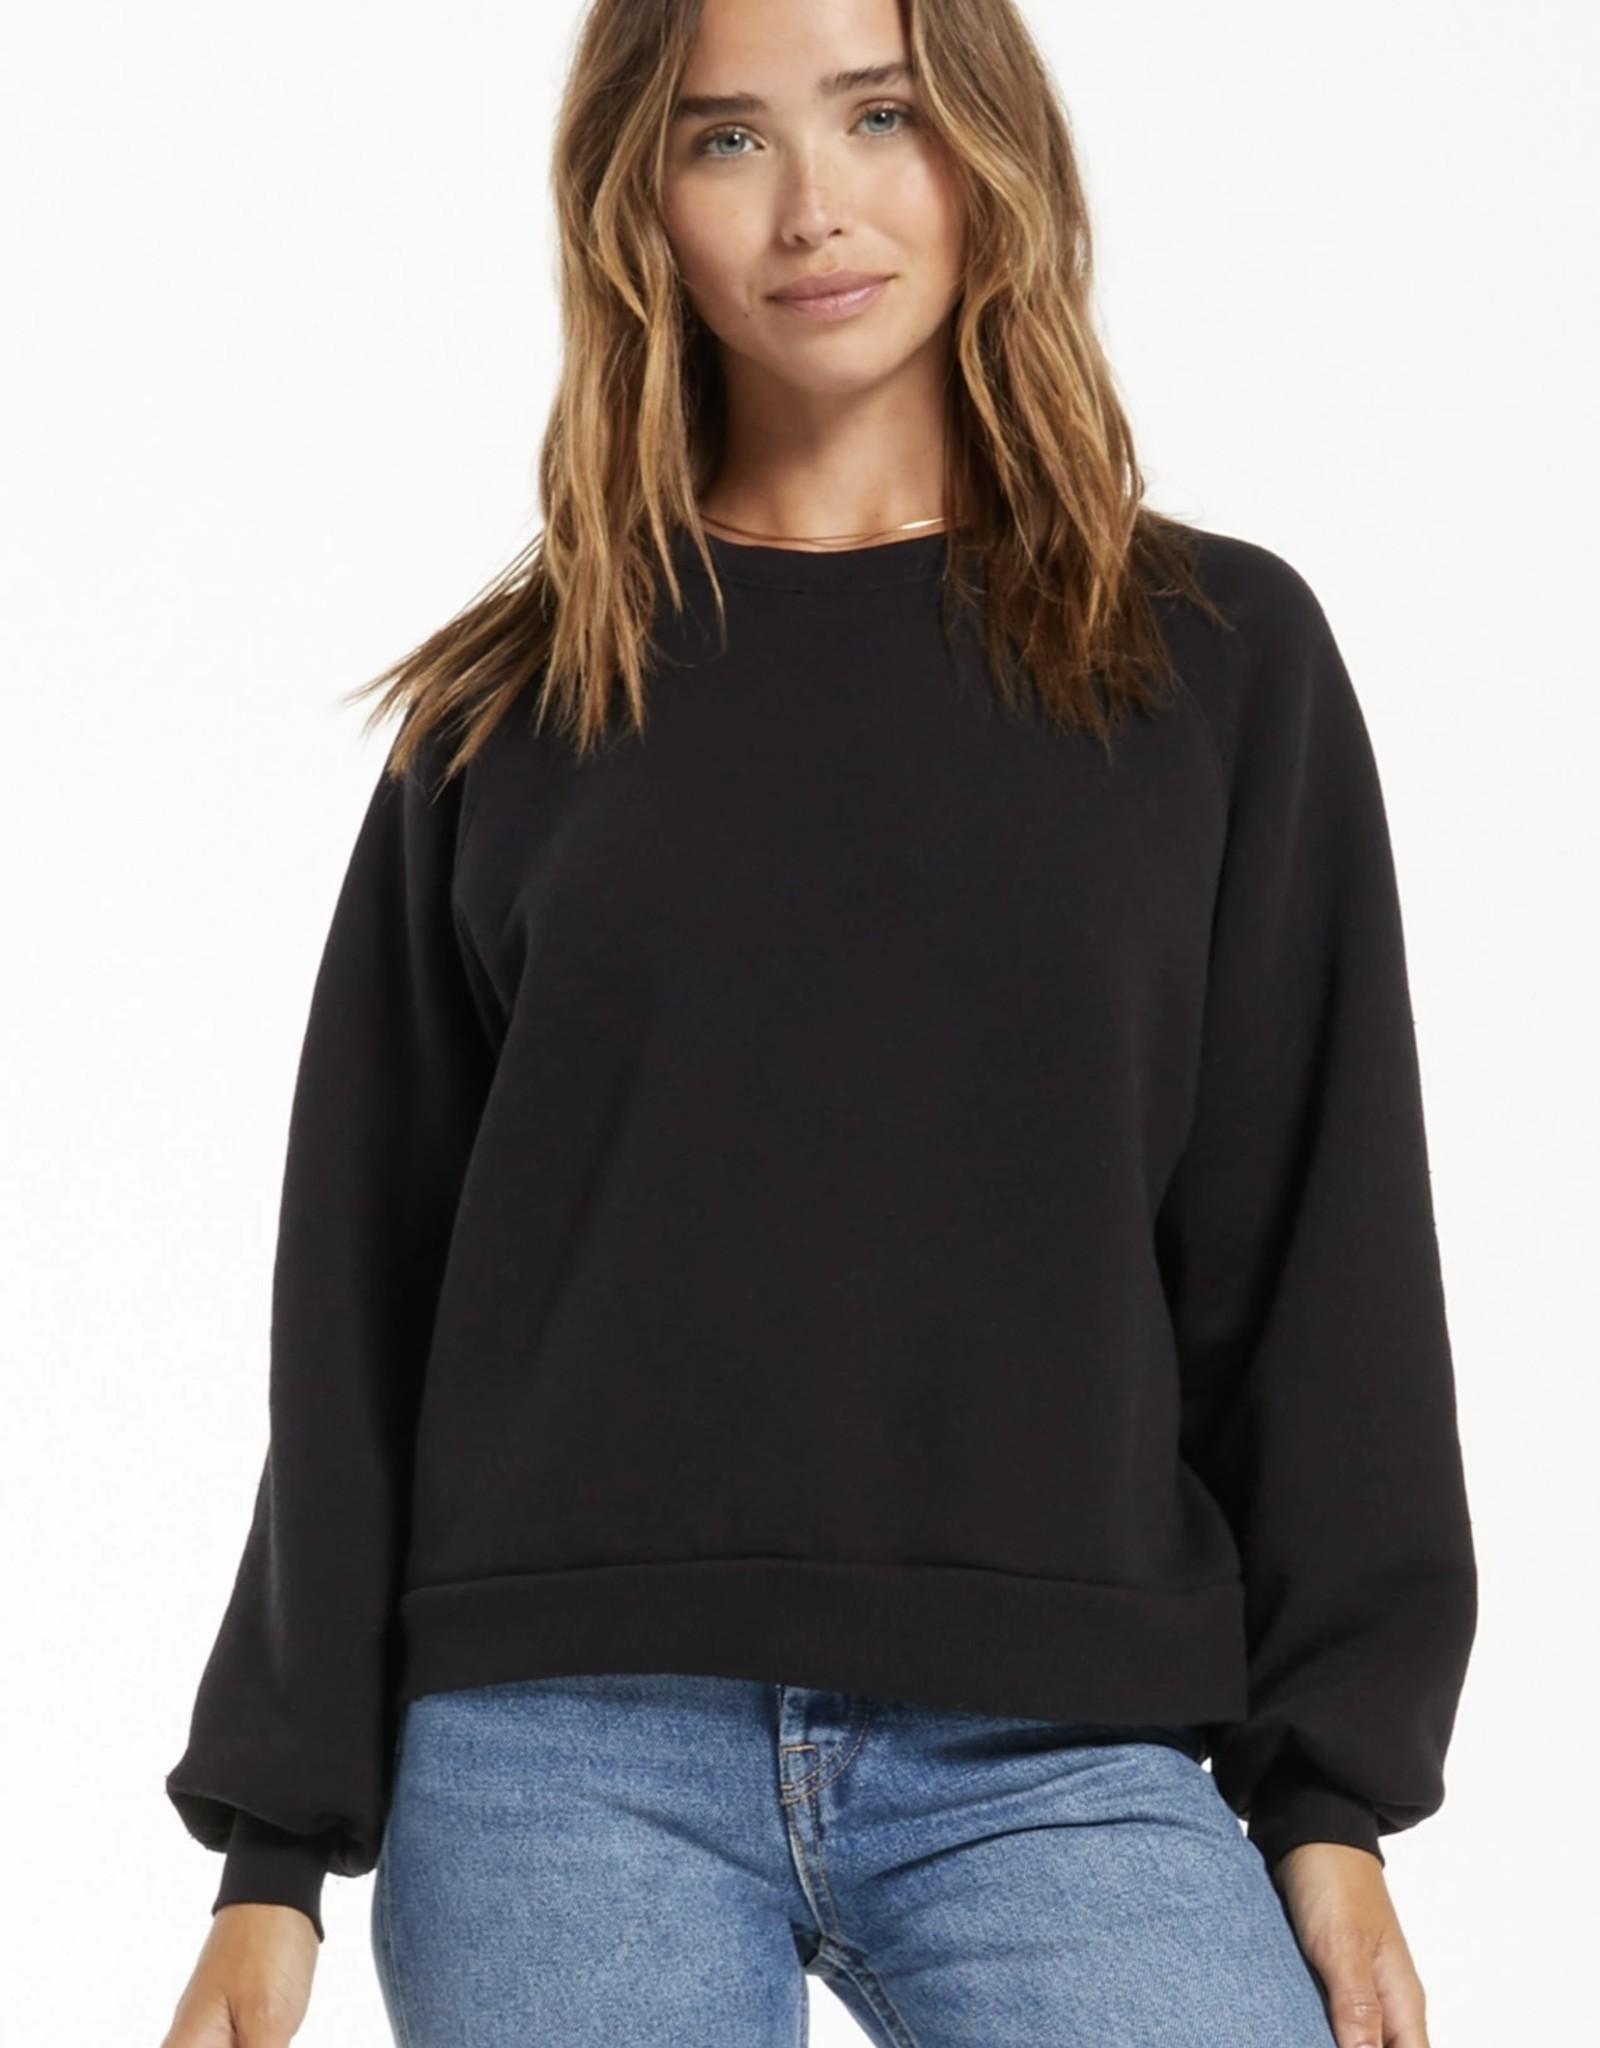 Z Supply Billie Classic Sweatshirt